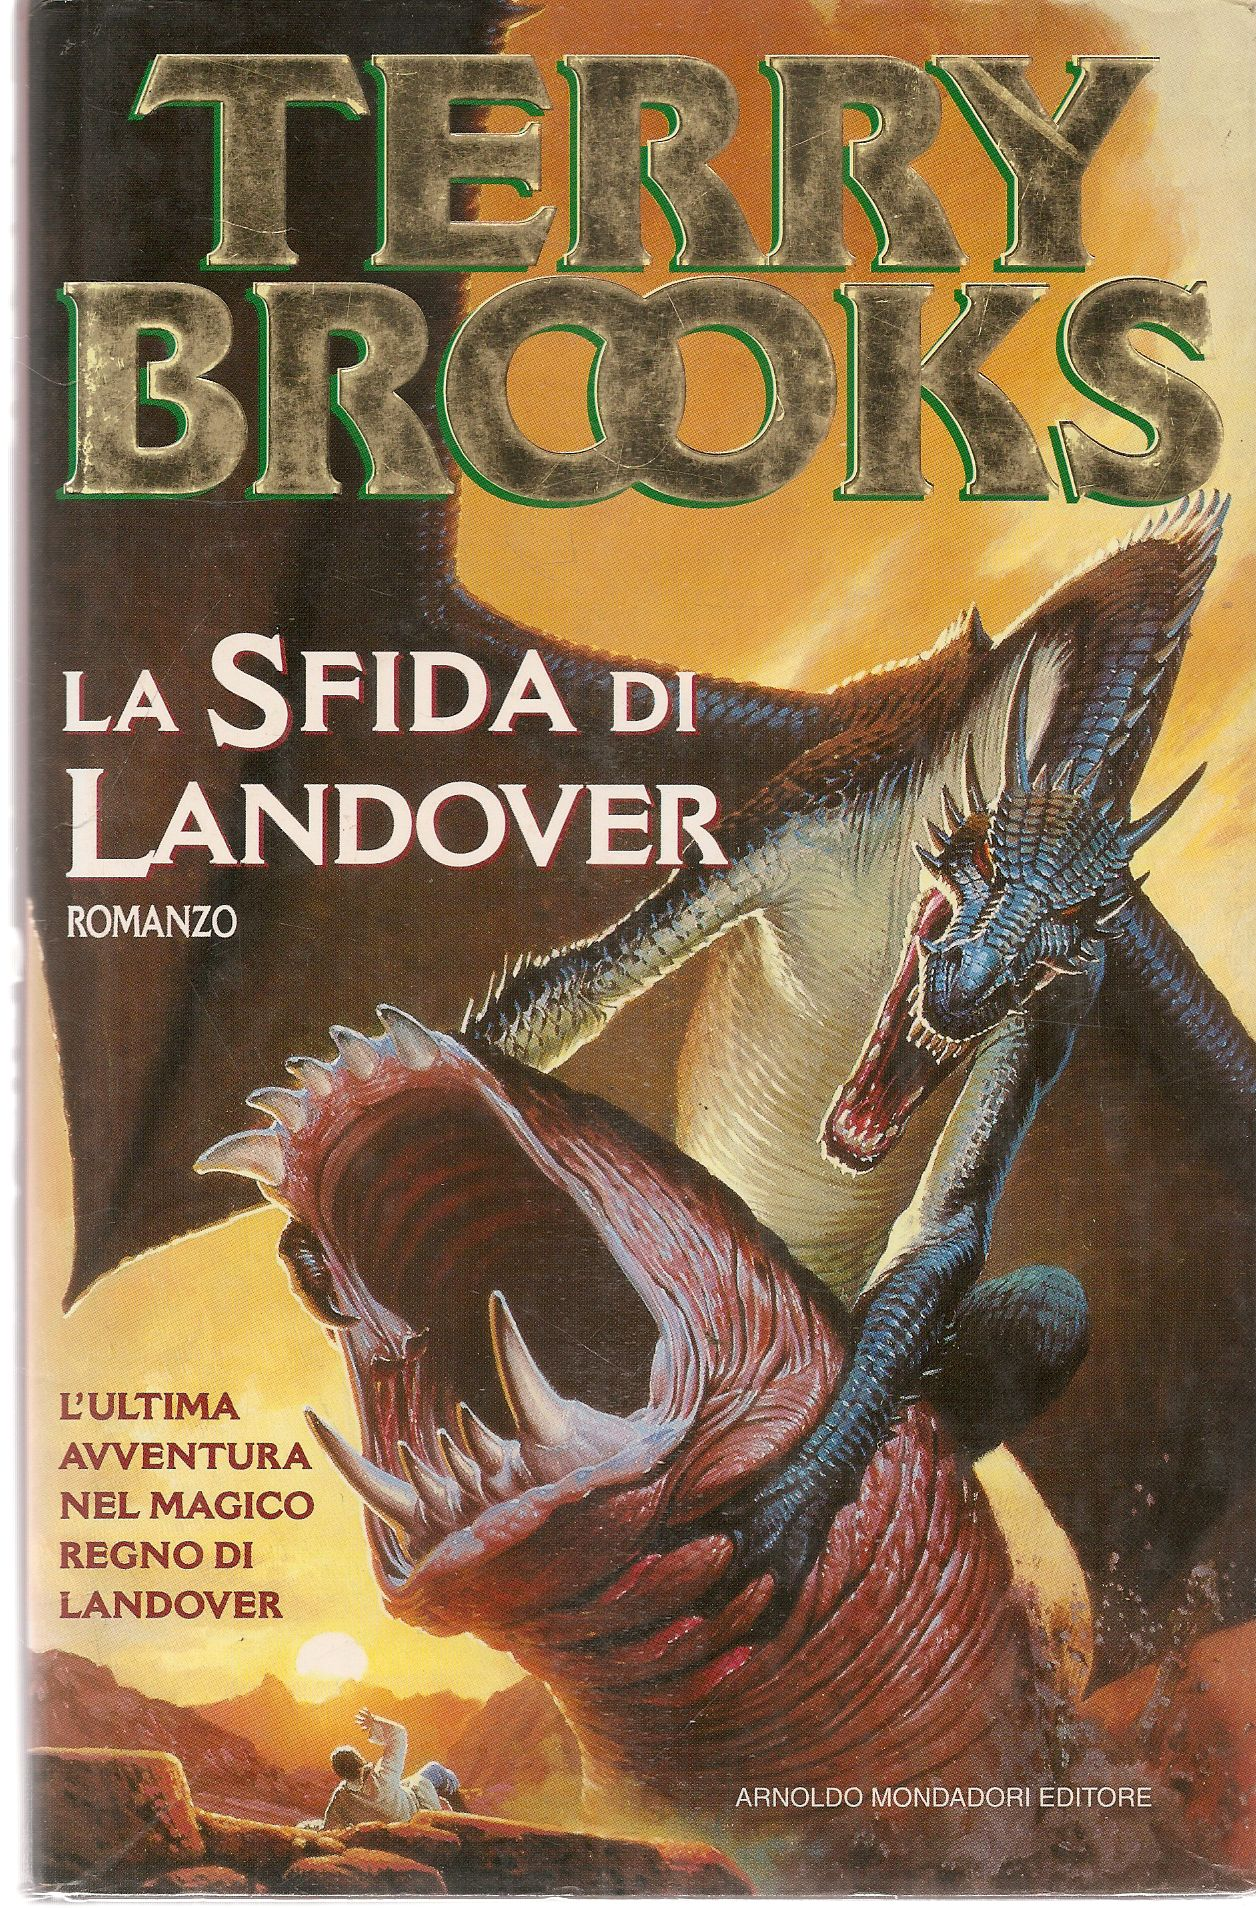 LA SFIDA DI LANDOVER - TERRY BROOKS